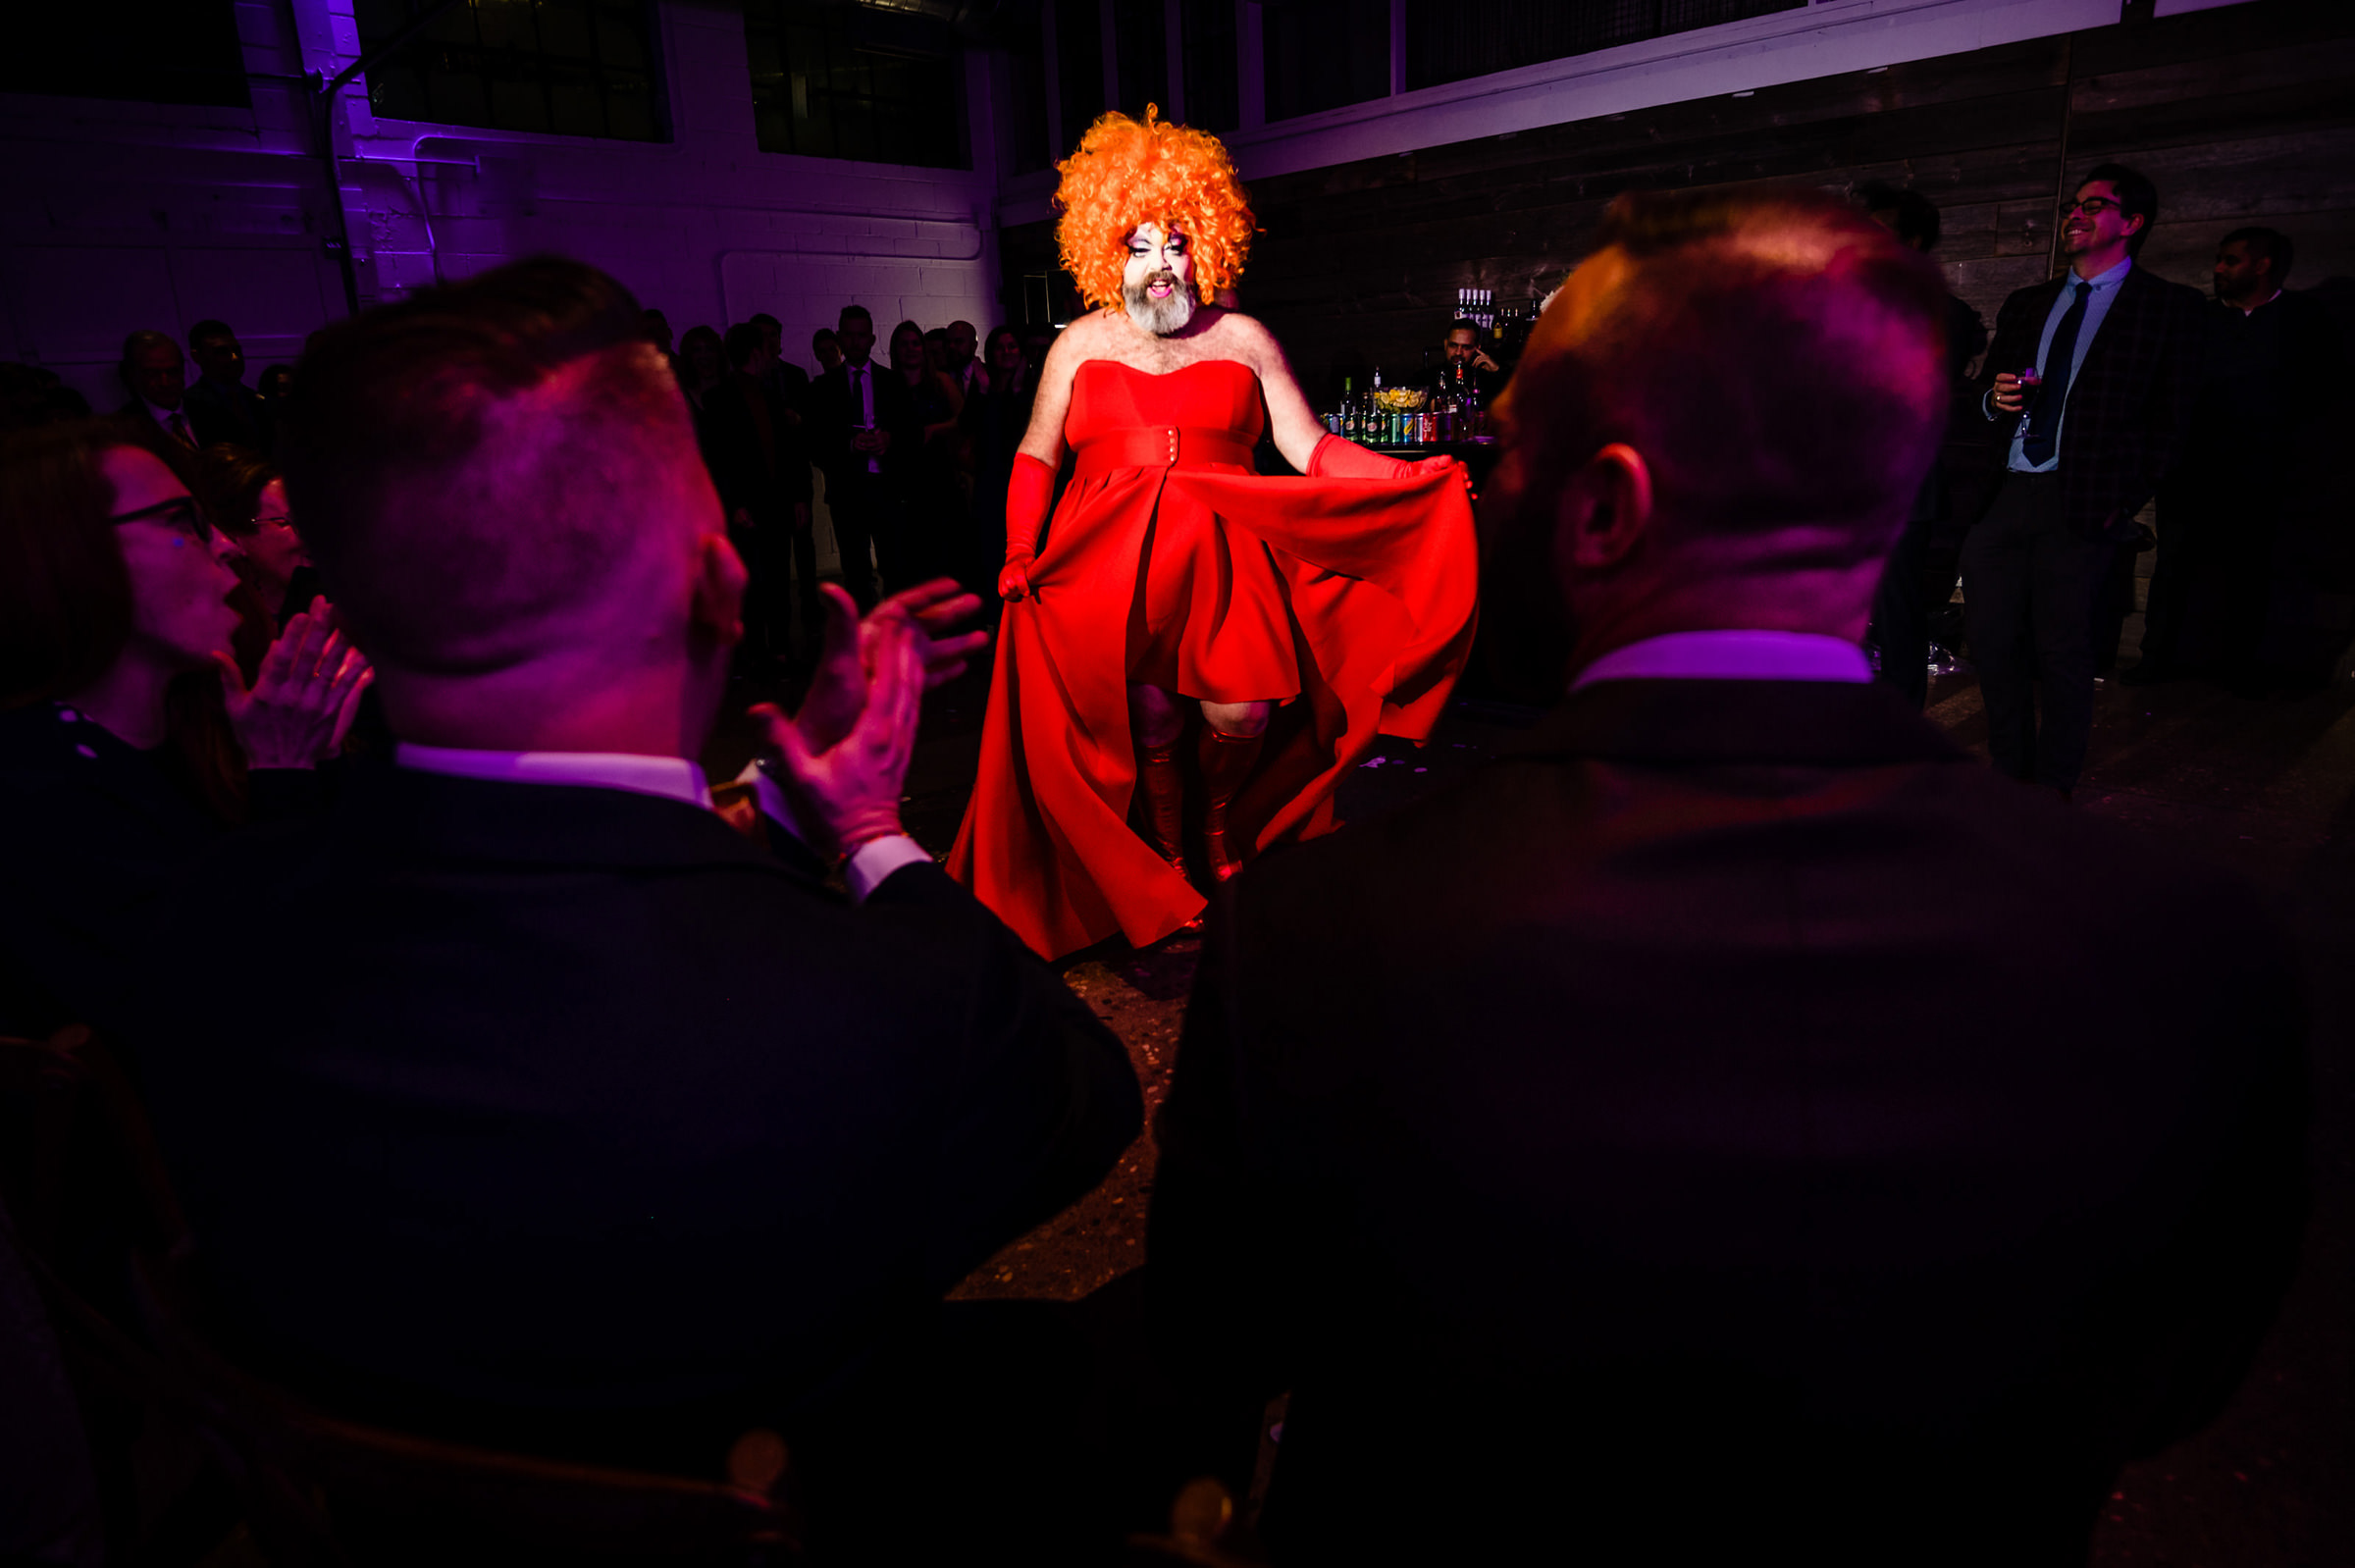 Drag queen performs - photo by Moore Photography